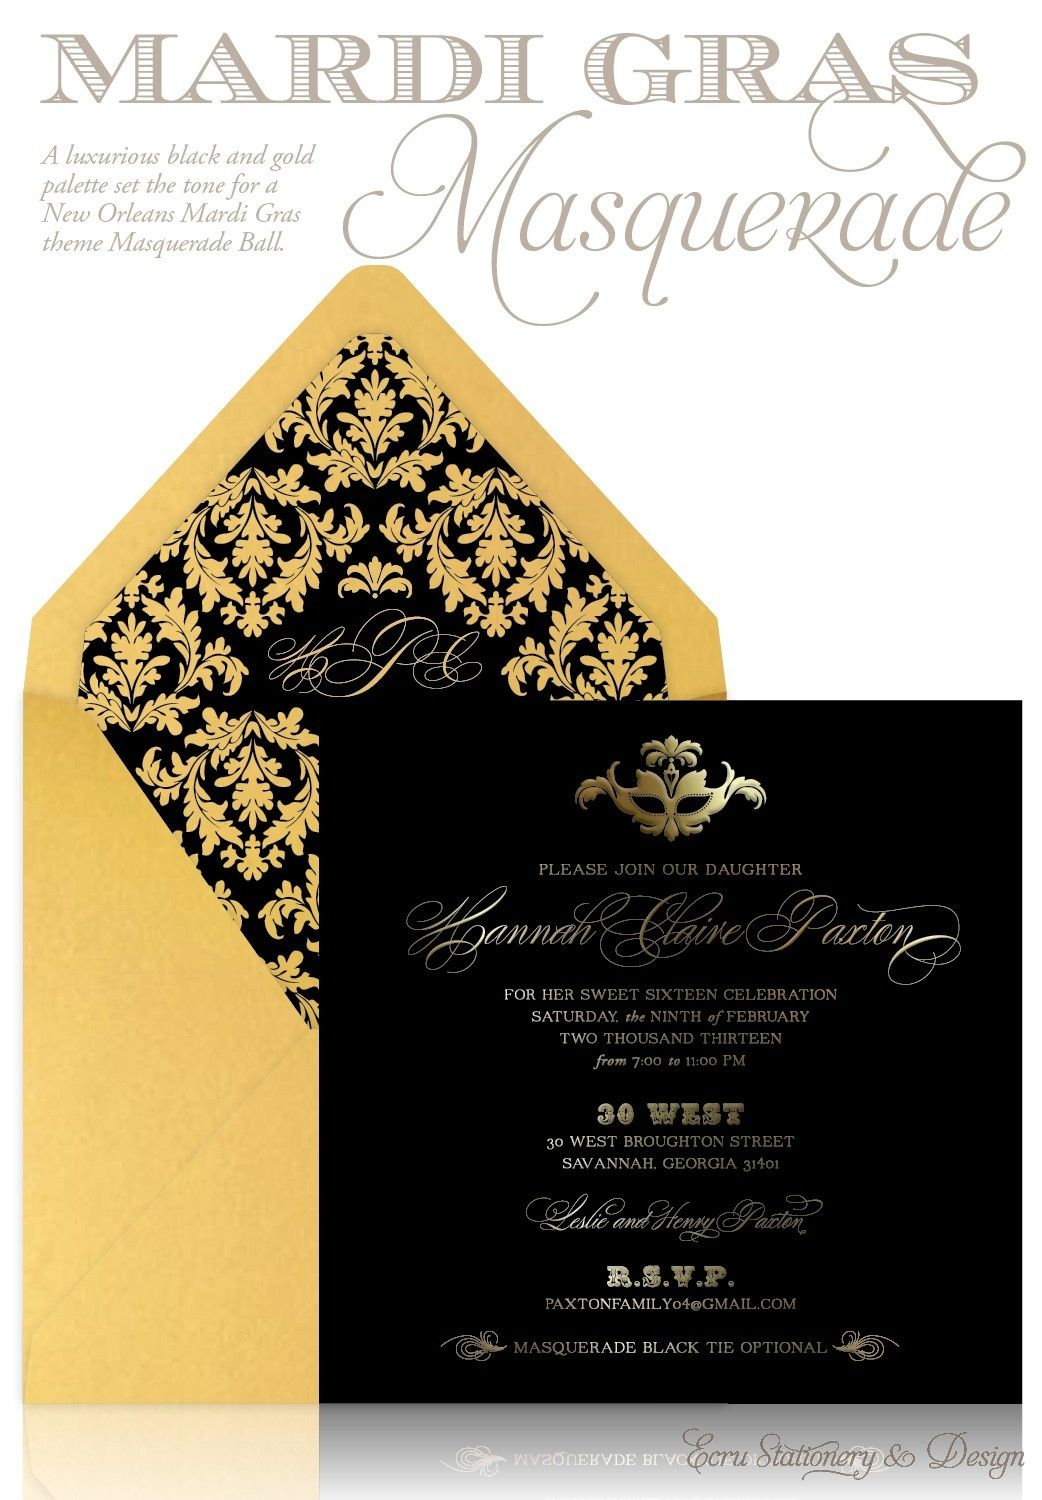 Masquerade Ball Invitation Templates Free Quince Ideas Pinterest